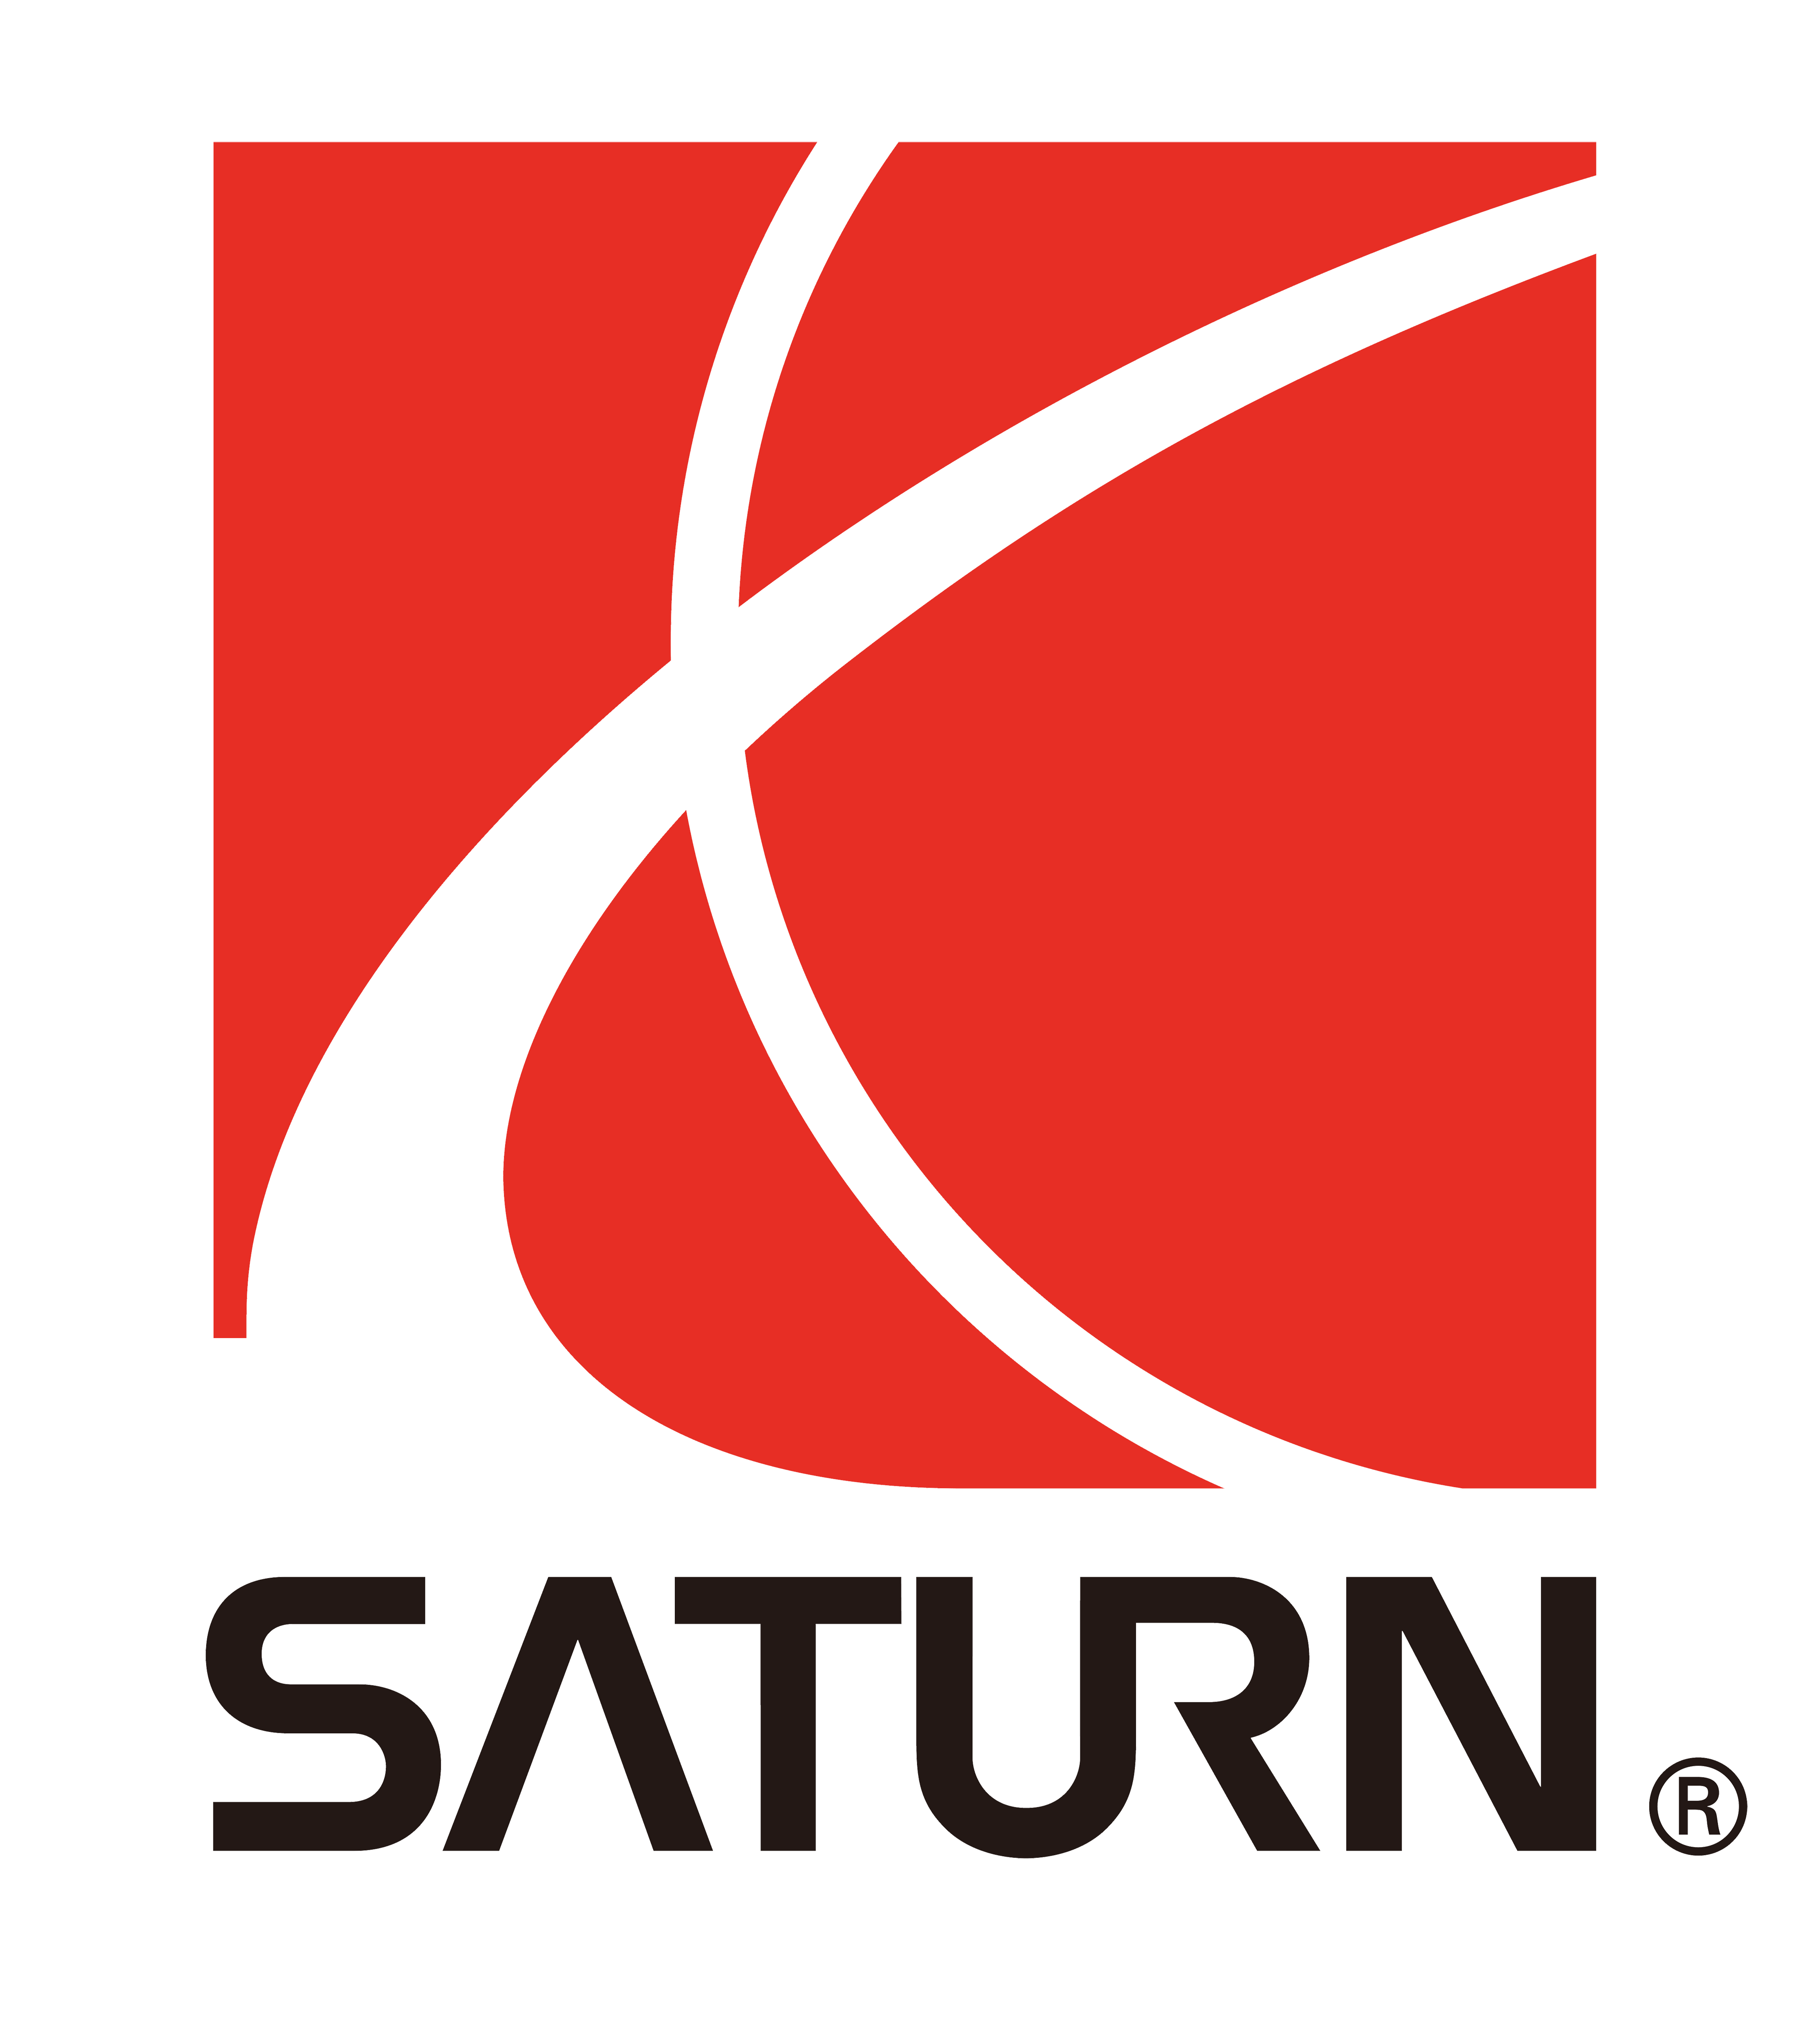 Saturn-refaire-cle-serrurier-automobile-